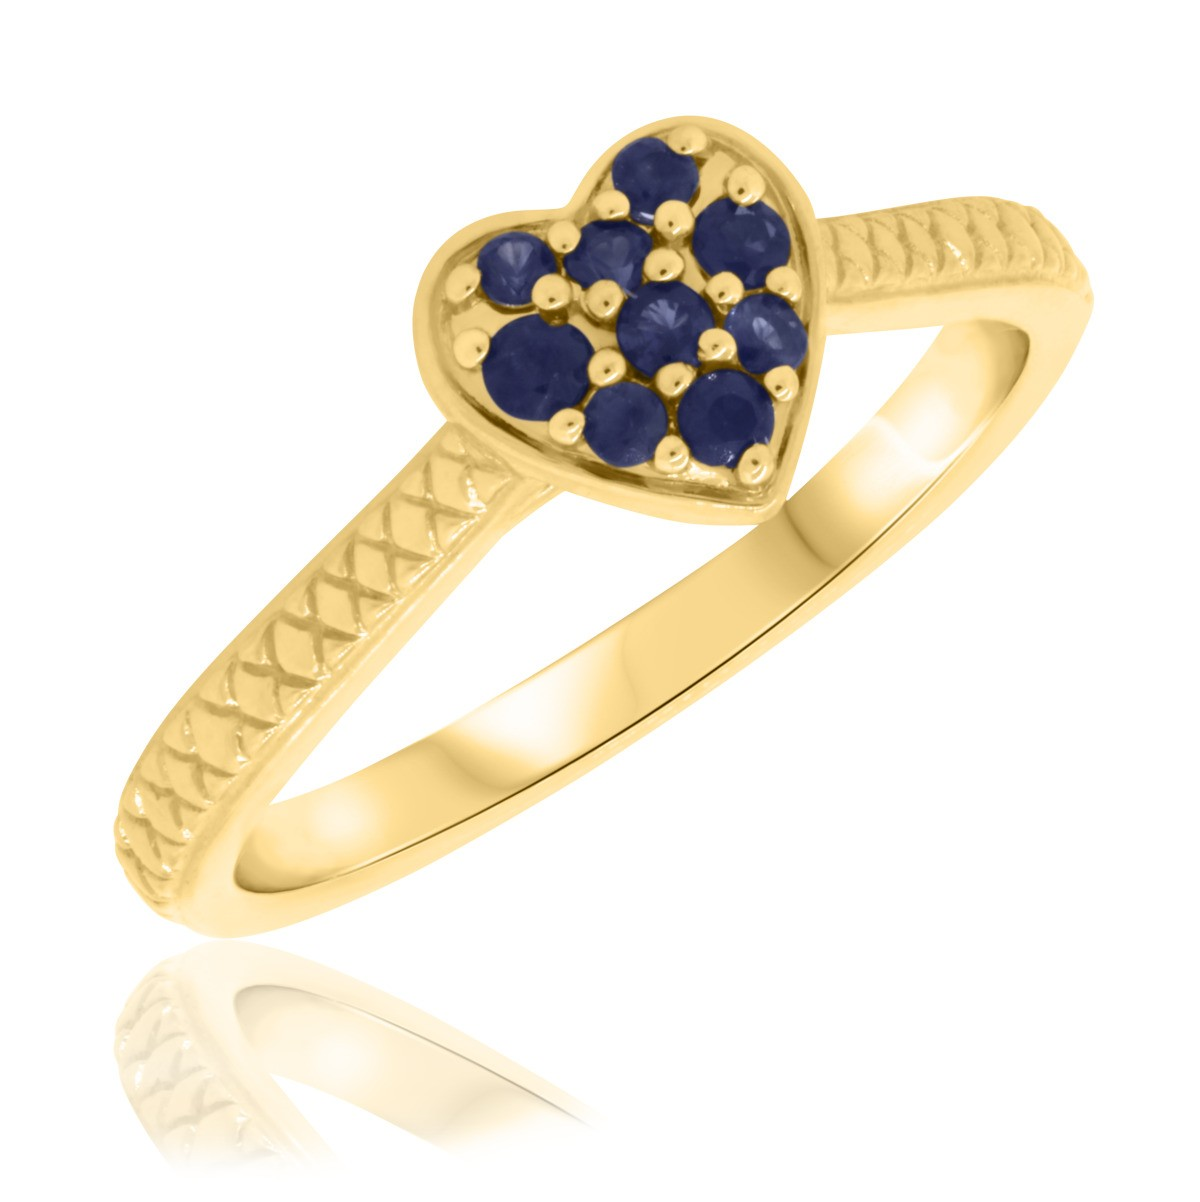 1/4 Carat T.W. Sapphire Engagement Ring 14K Yellow Gold